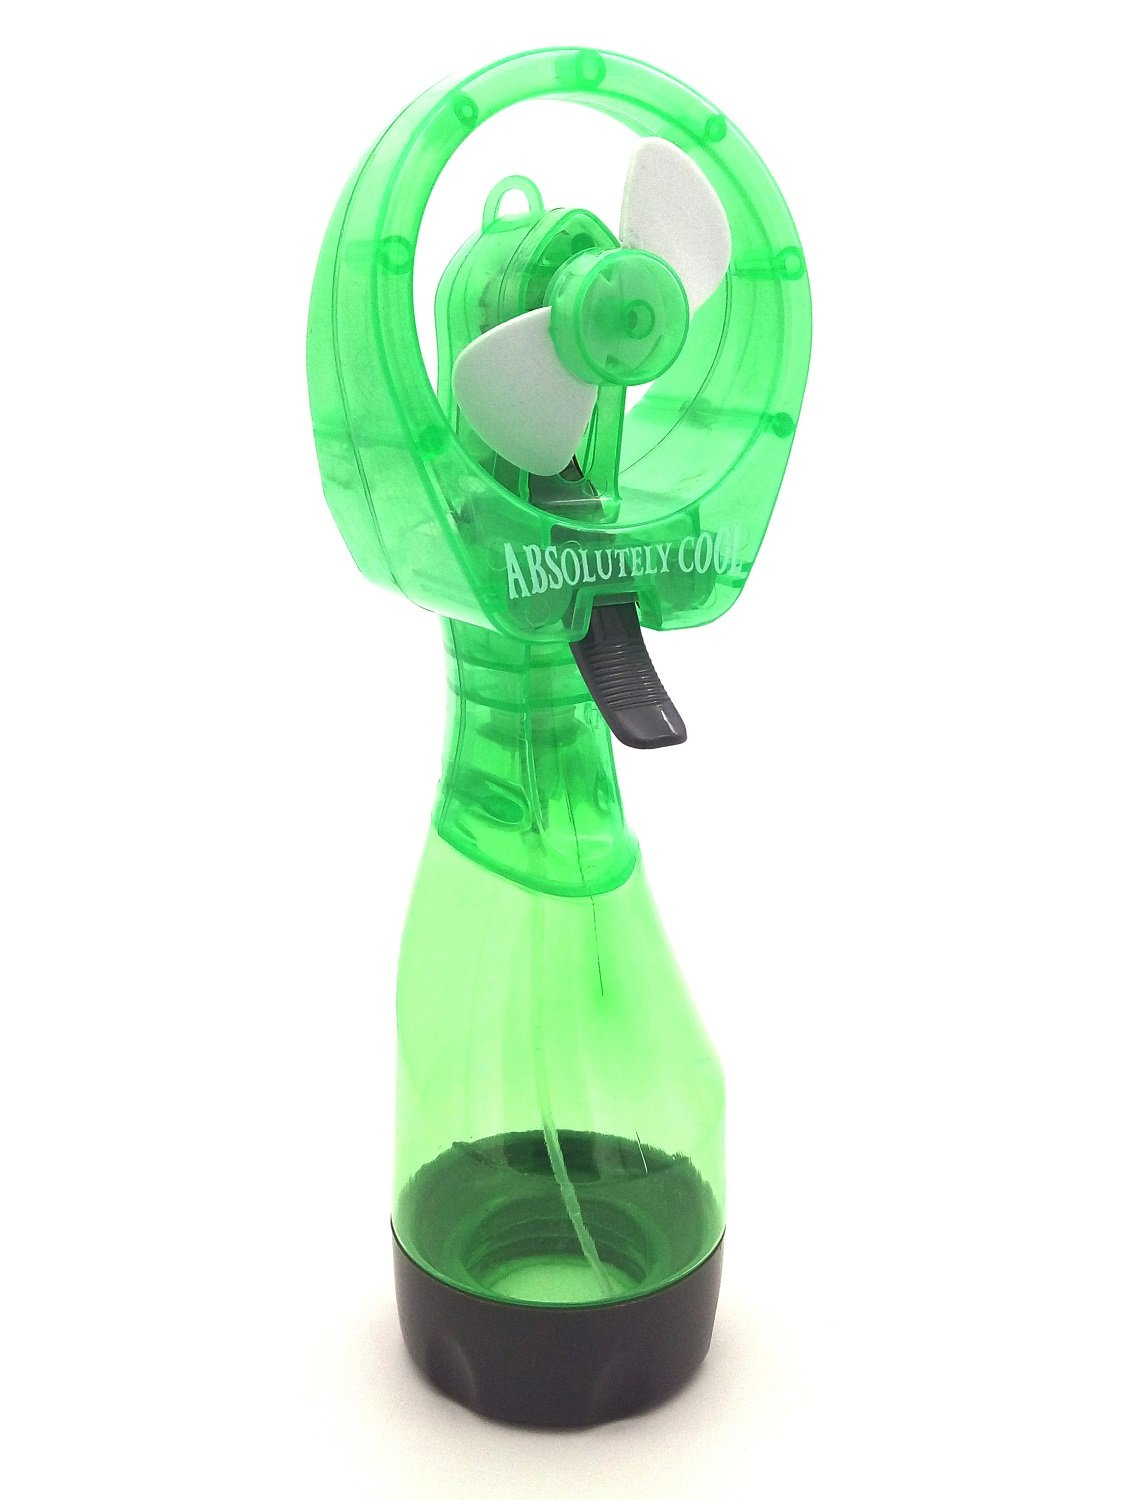 S'beauty Portable Handheld Water Misting Fan Outdoor Carabiner Mini Fan Hand Atomizer for Summer Beach, Travel, Camping, BBQ and More Outdoor Activities (Green)